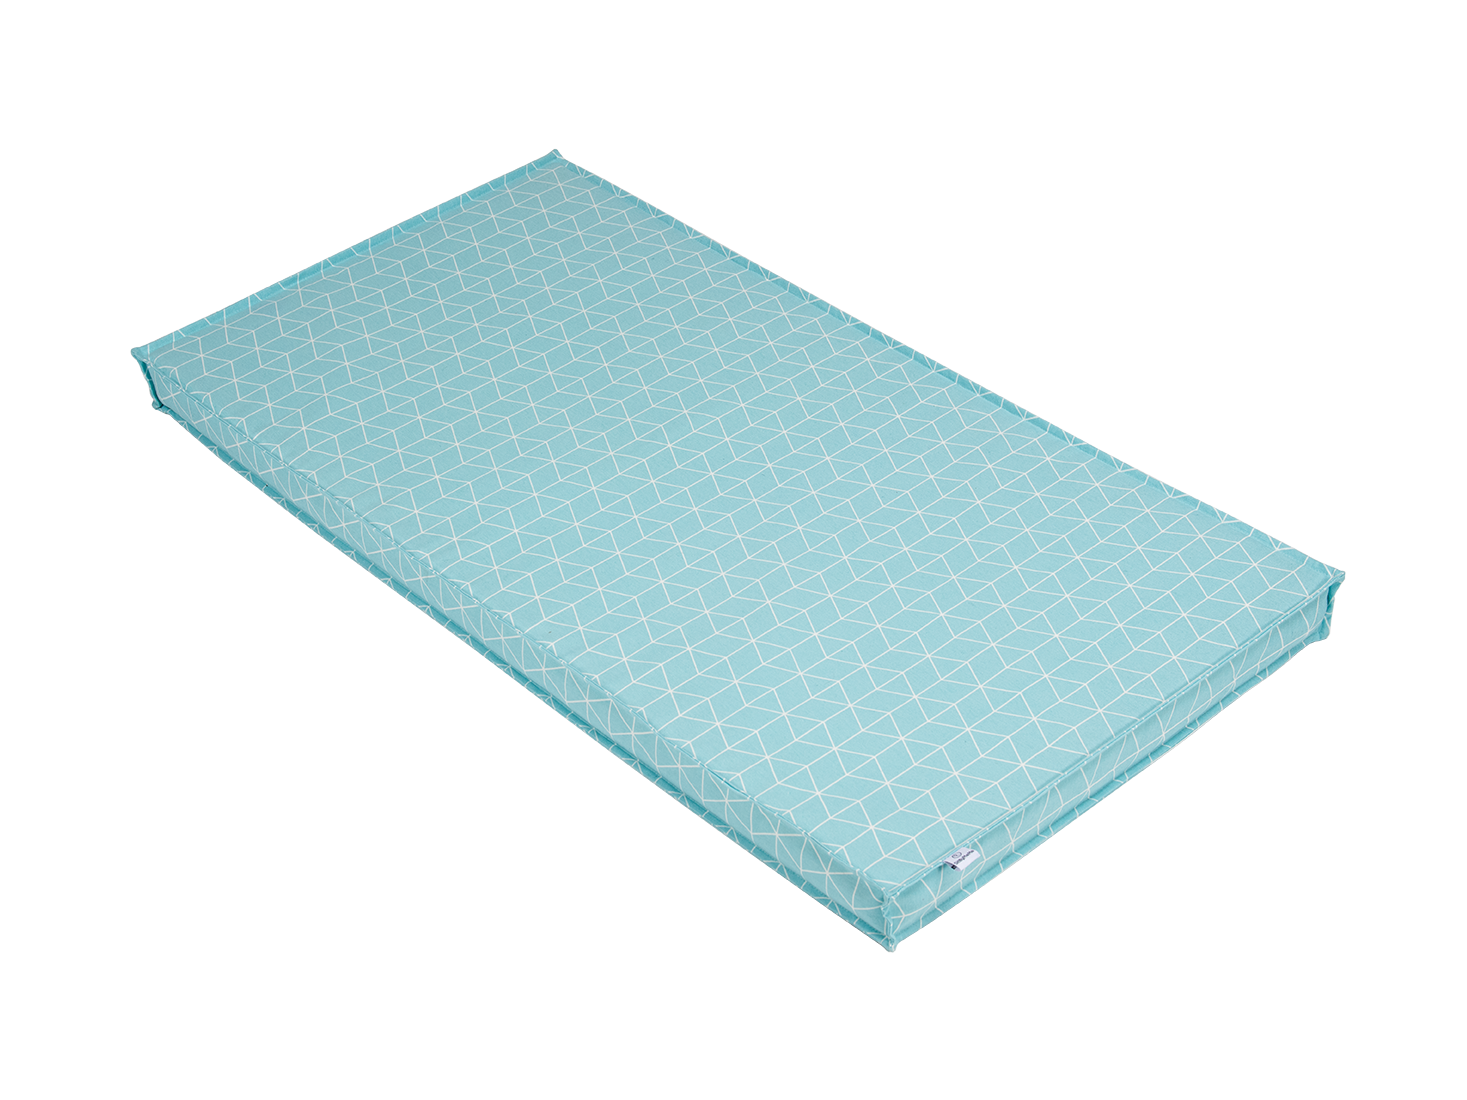 Speelmat, kinder mat, Spelen matras, Legemadras, Play mattress, SitByMeMe, Playmat